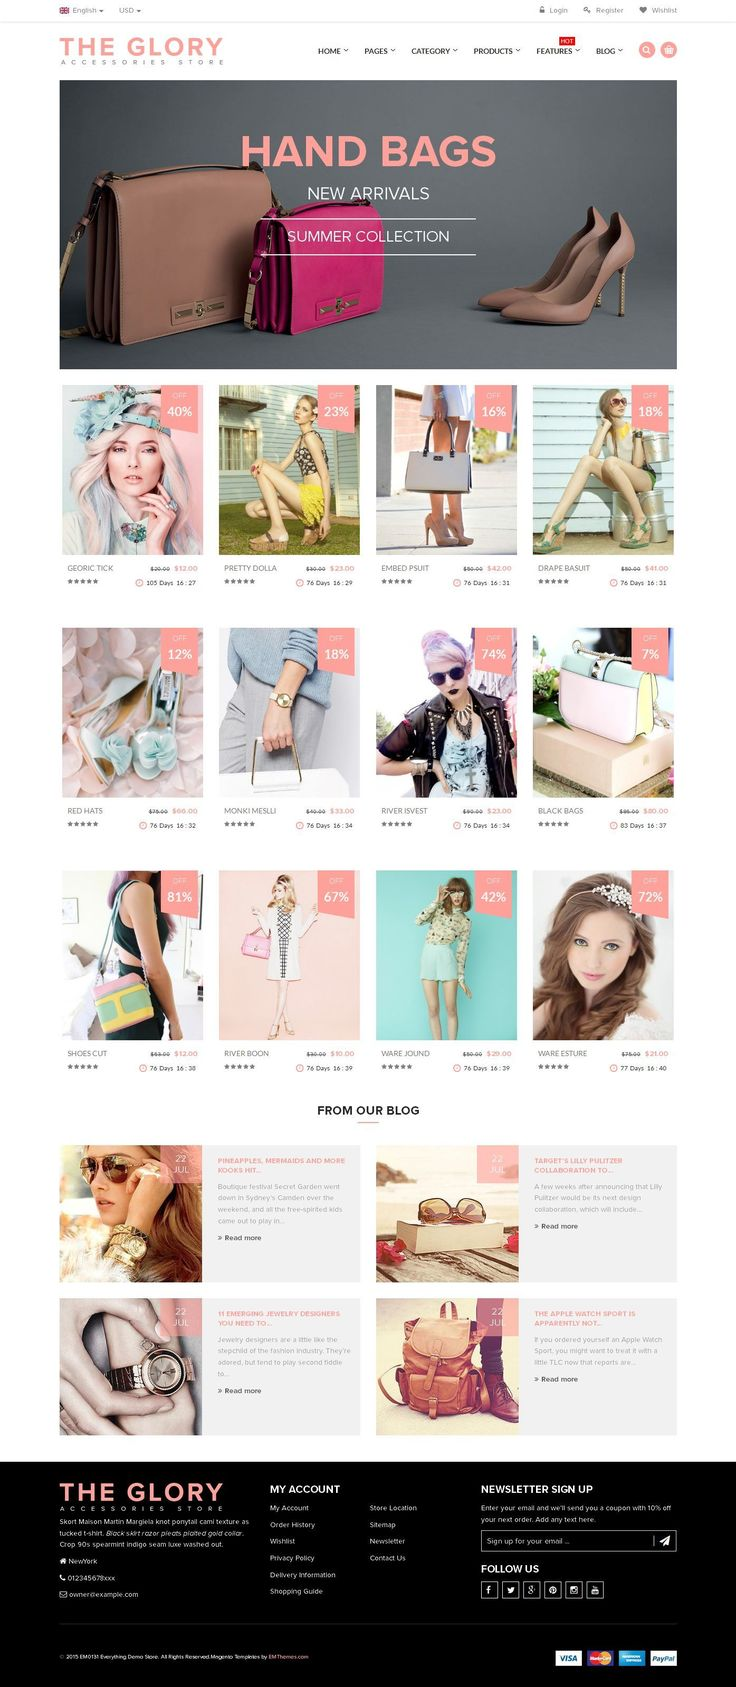 html5 css3 menu bootstrap responsive magento css3 minimal minimal clean theglory multipurpose group deal clean decor decor gift